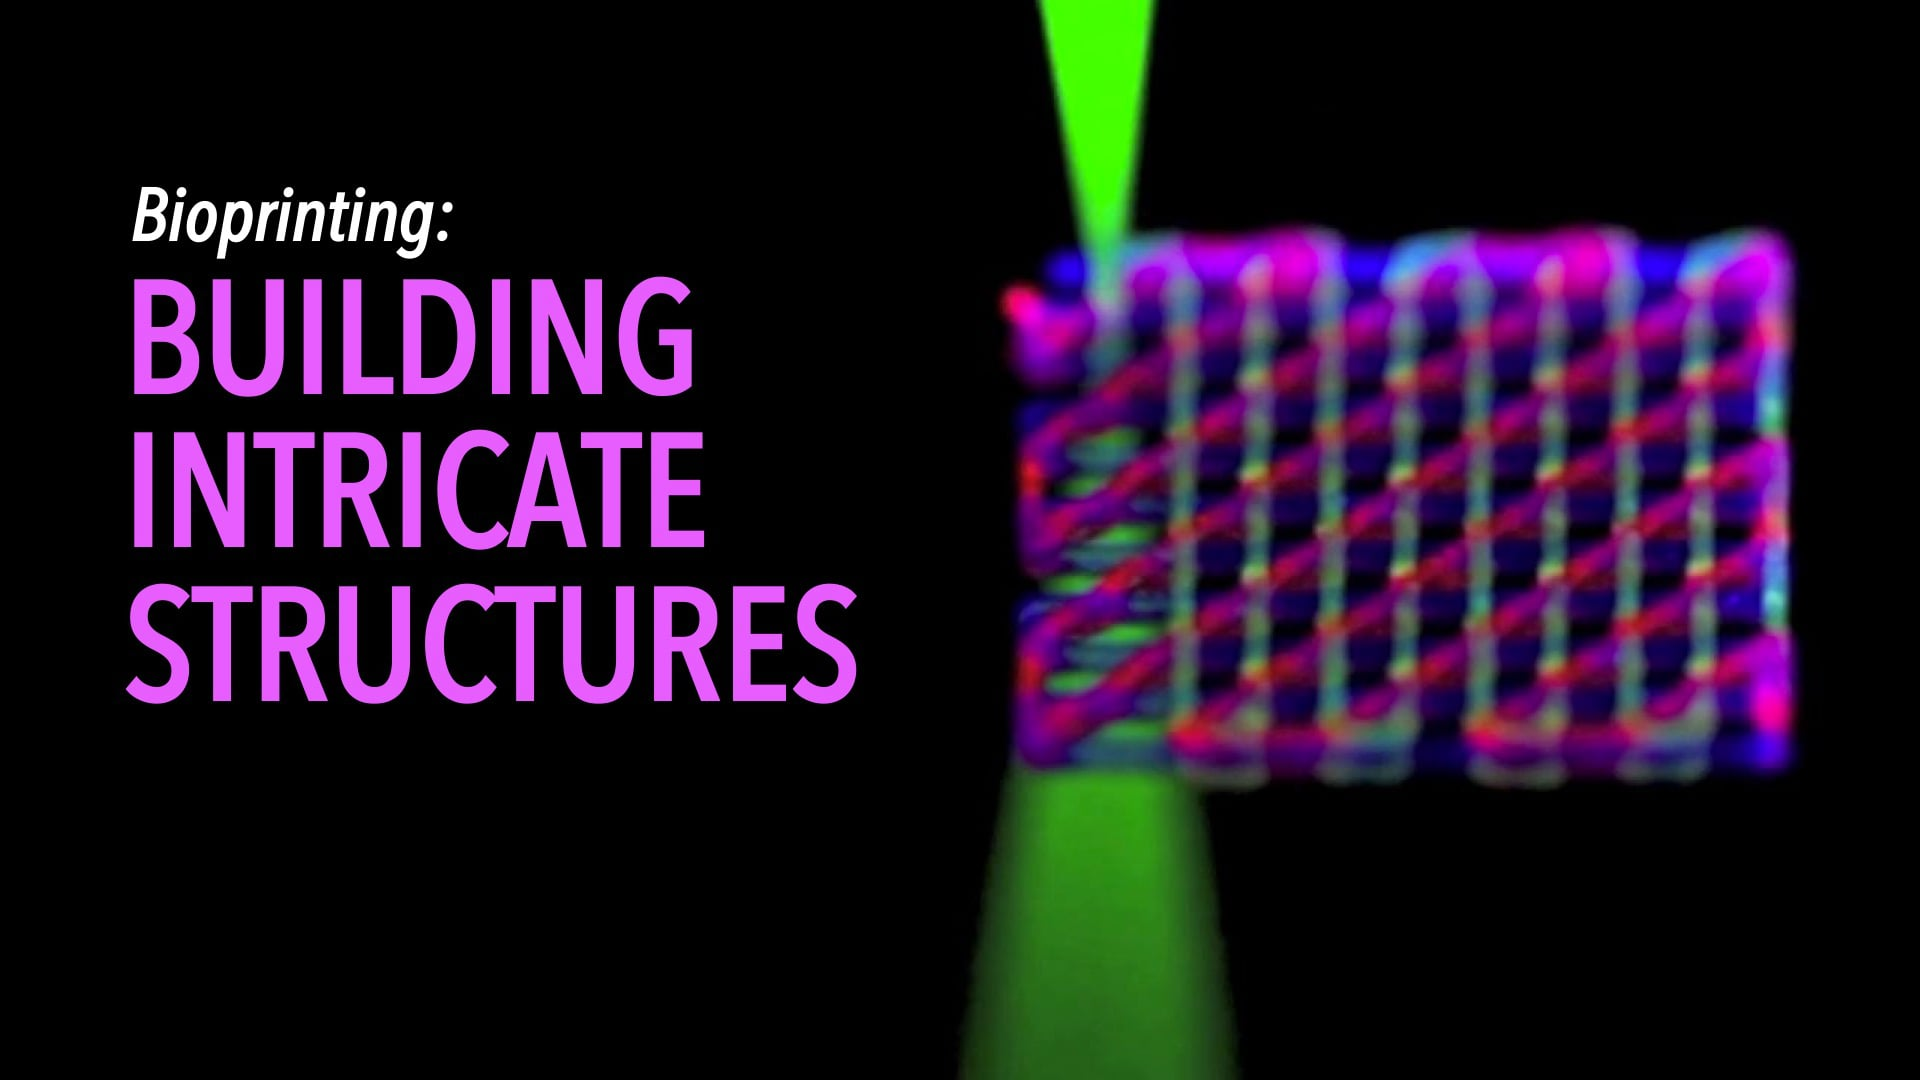 Bioprinting: Building Intricate Structures